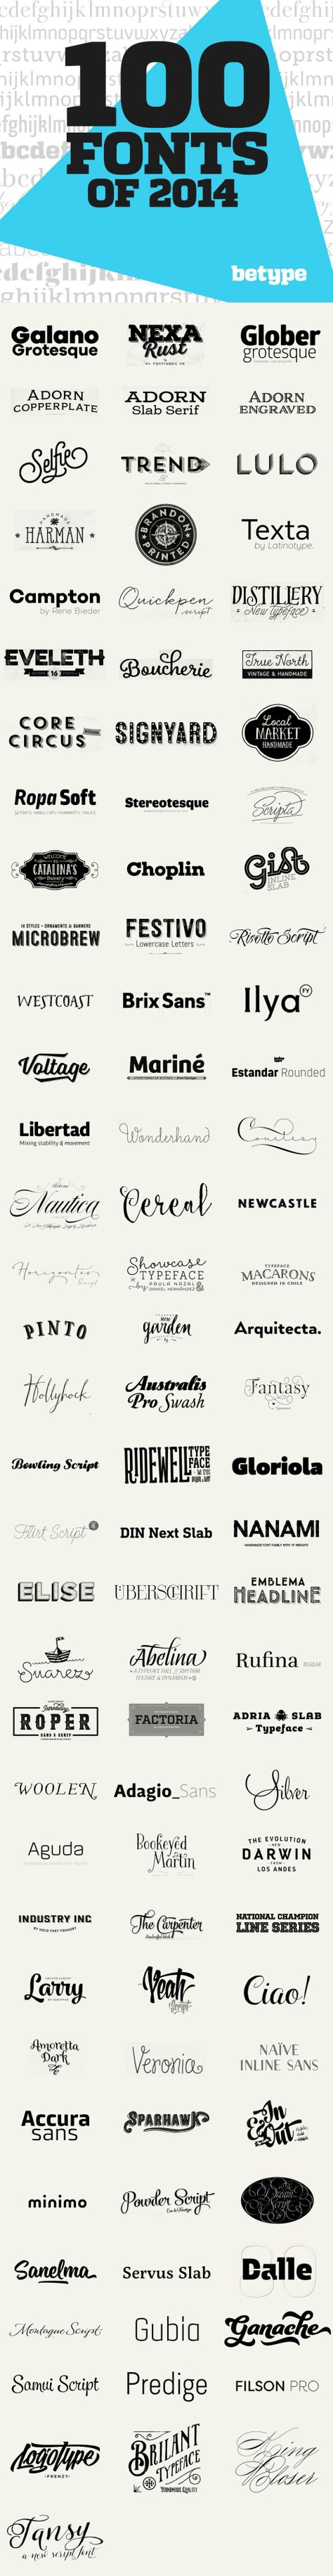 100 Best Fonts of 2014. Links at the bottom of the website www.lab333.com www.facebook.com/pages/LAB-STYLE/585086788169863 www.lab333style.com lablikes.tumblr.com www.pinterest.com/labstyle